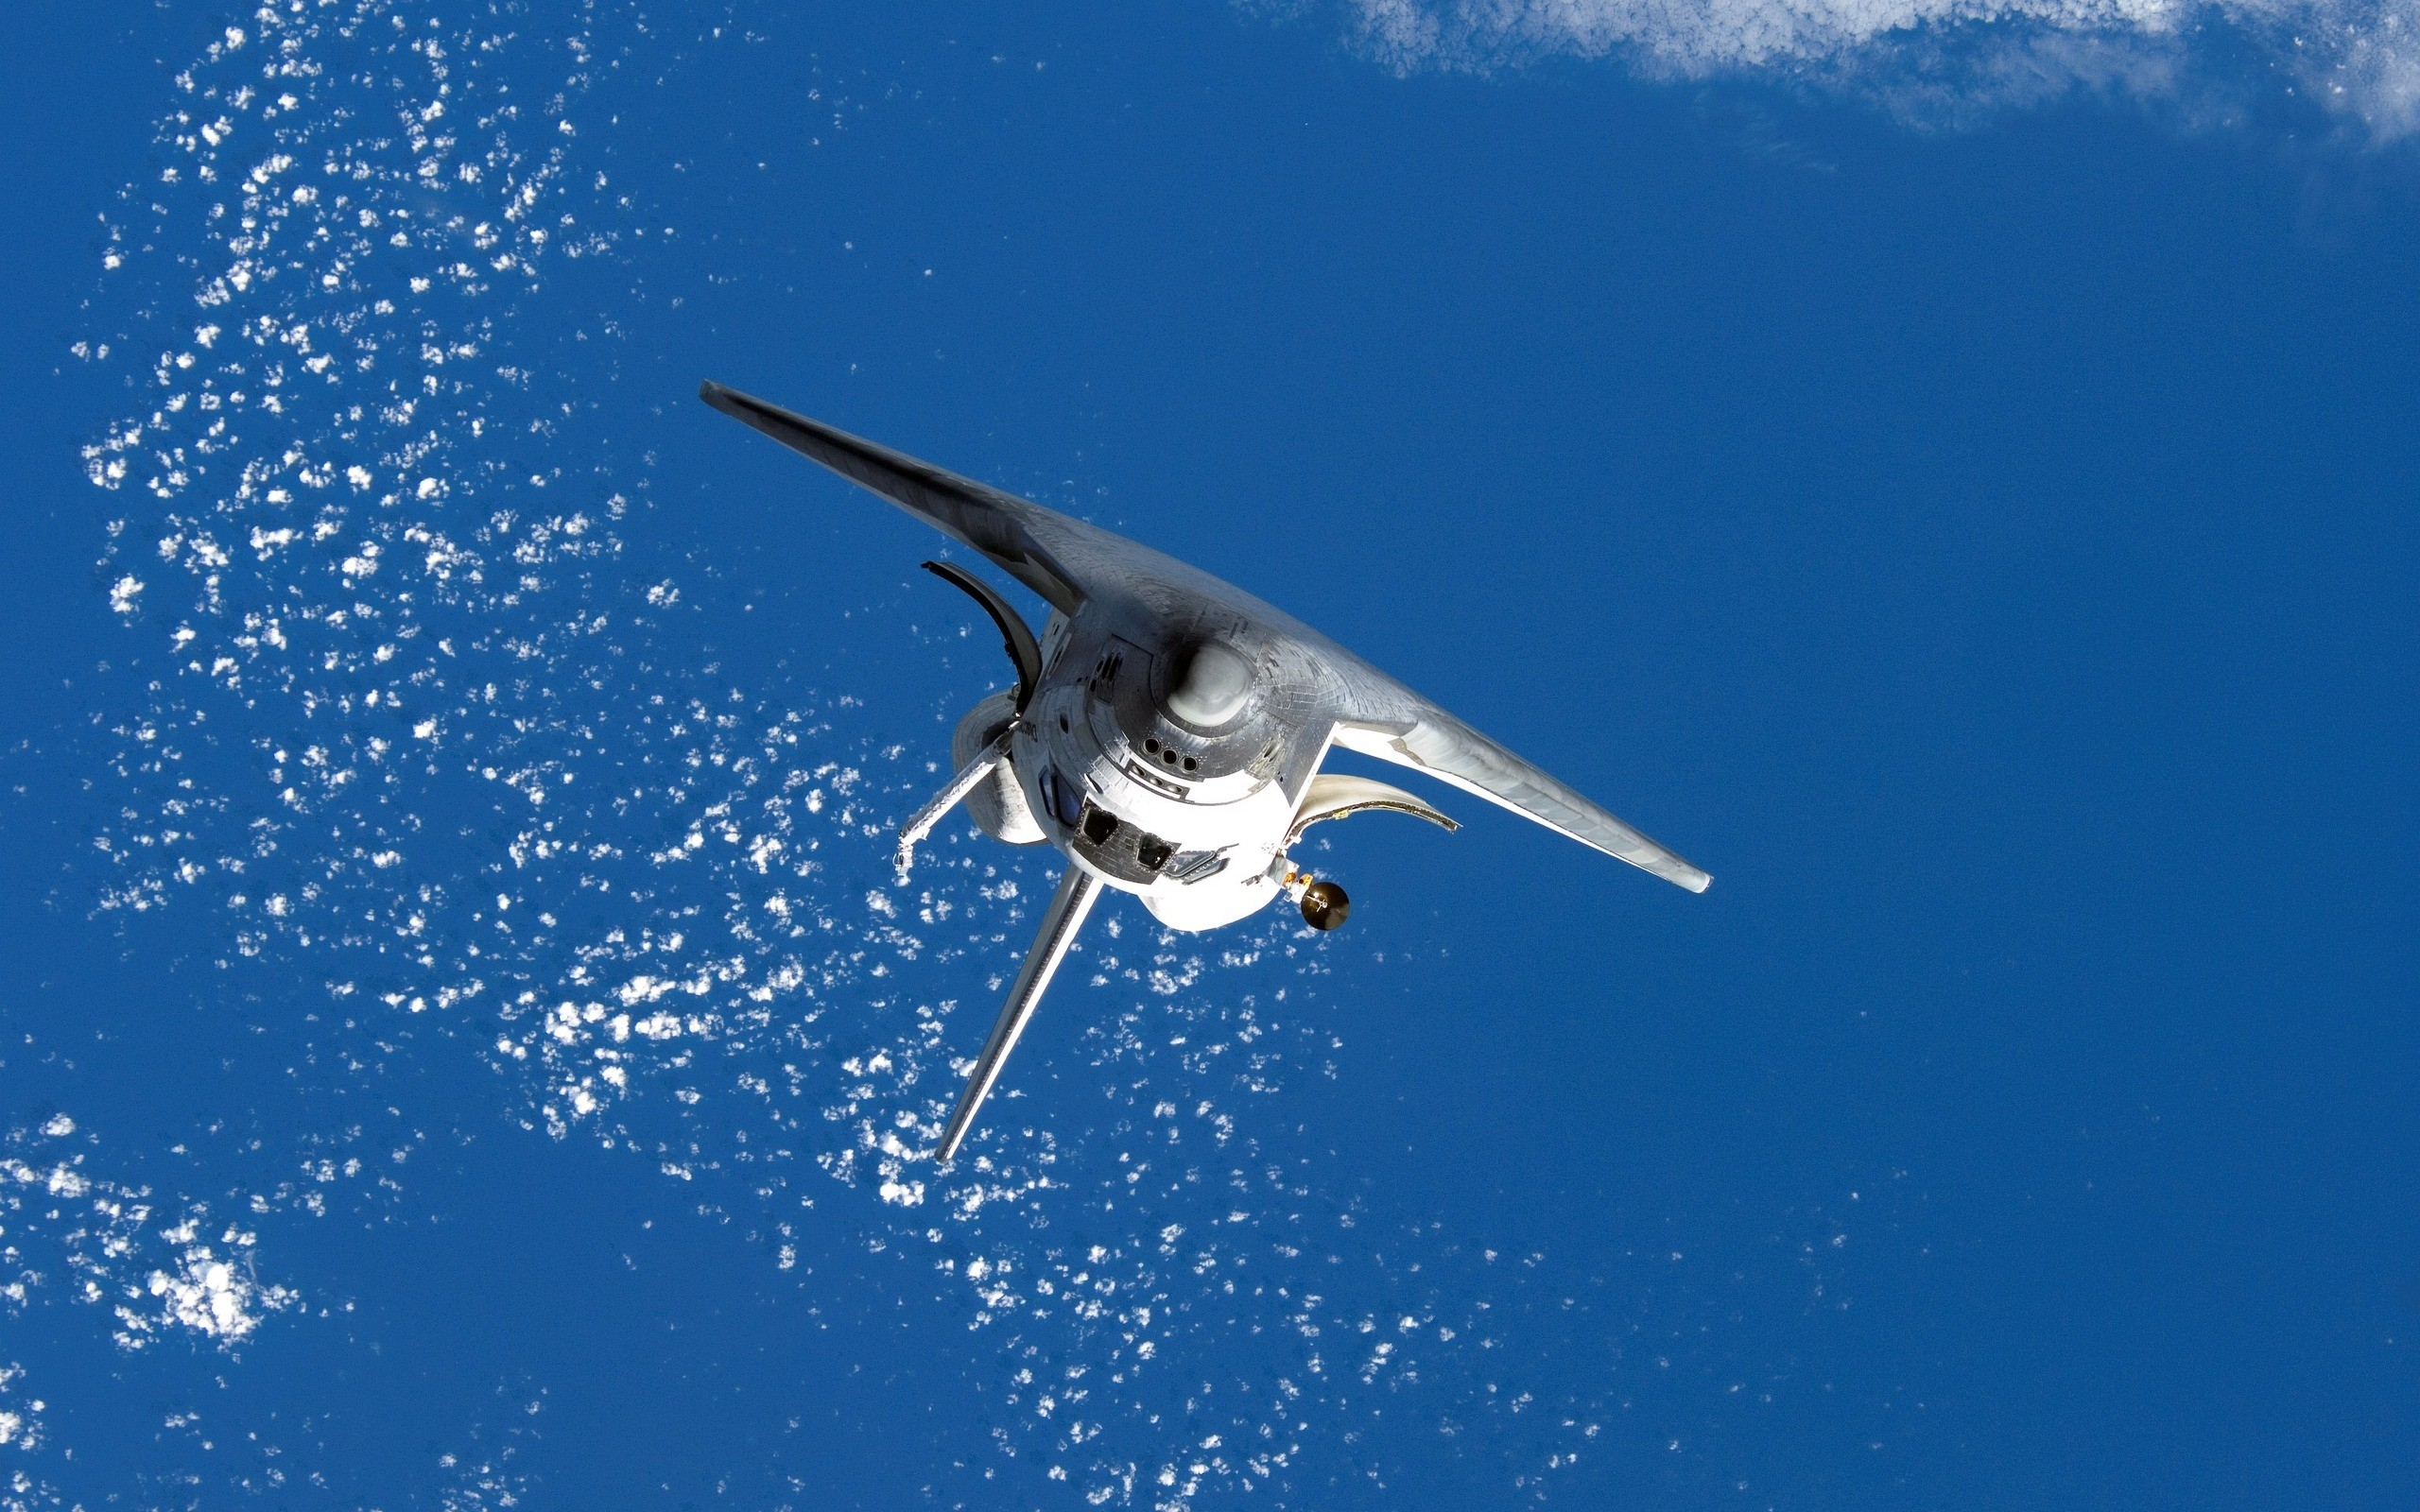 space flight wallpaper - photo #22